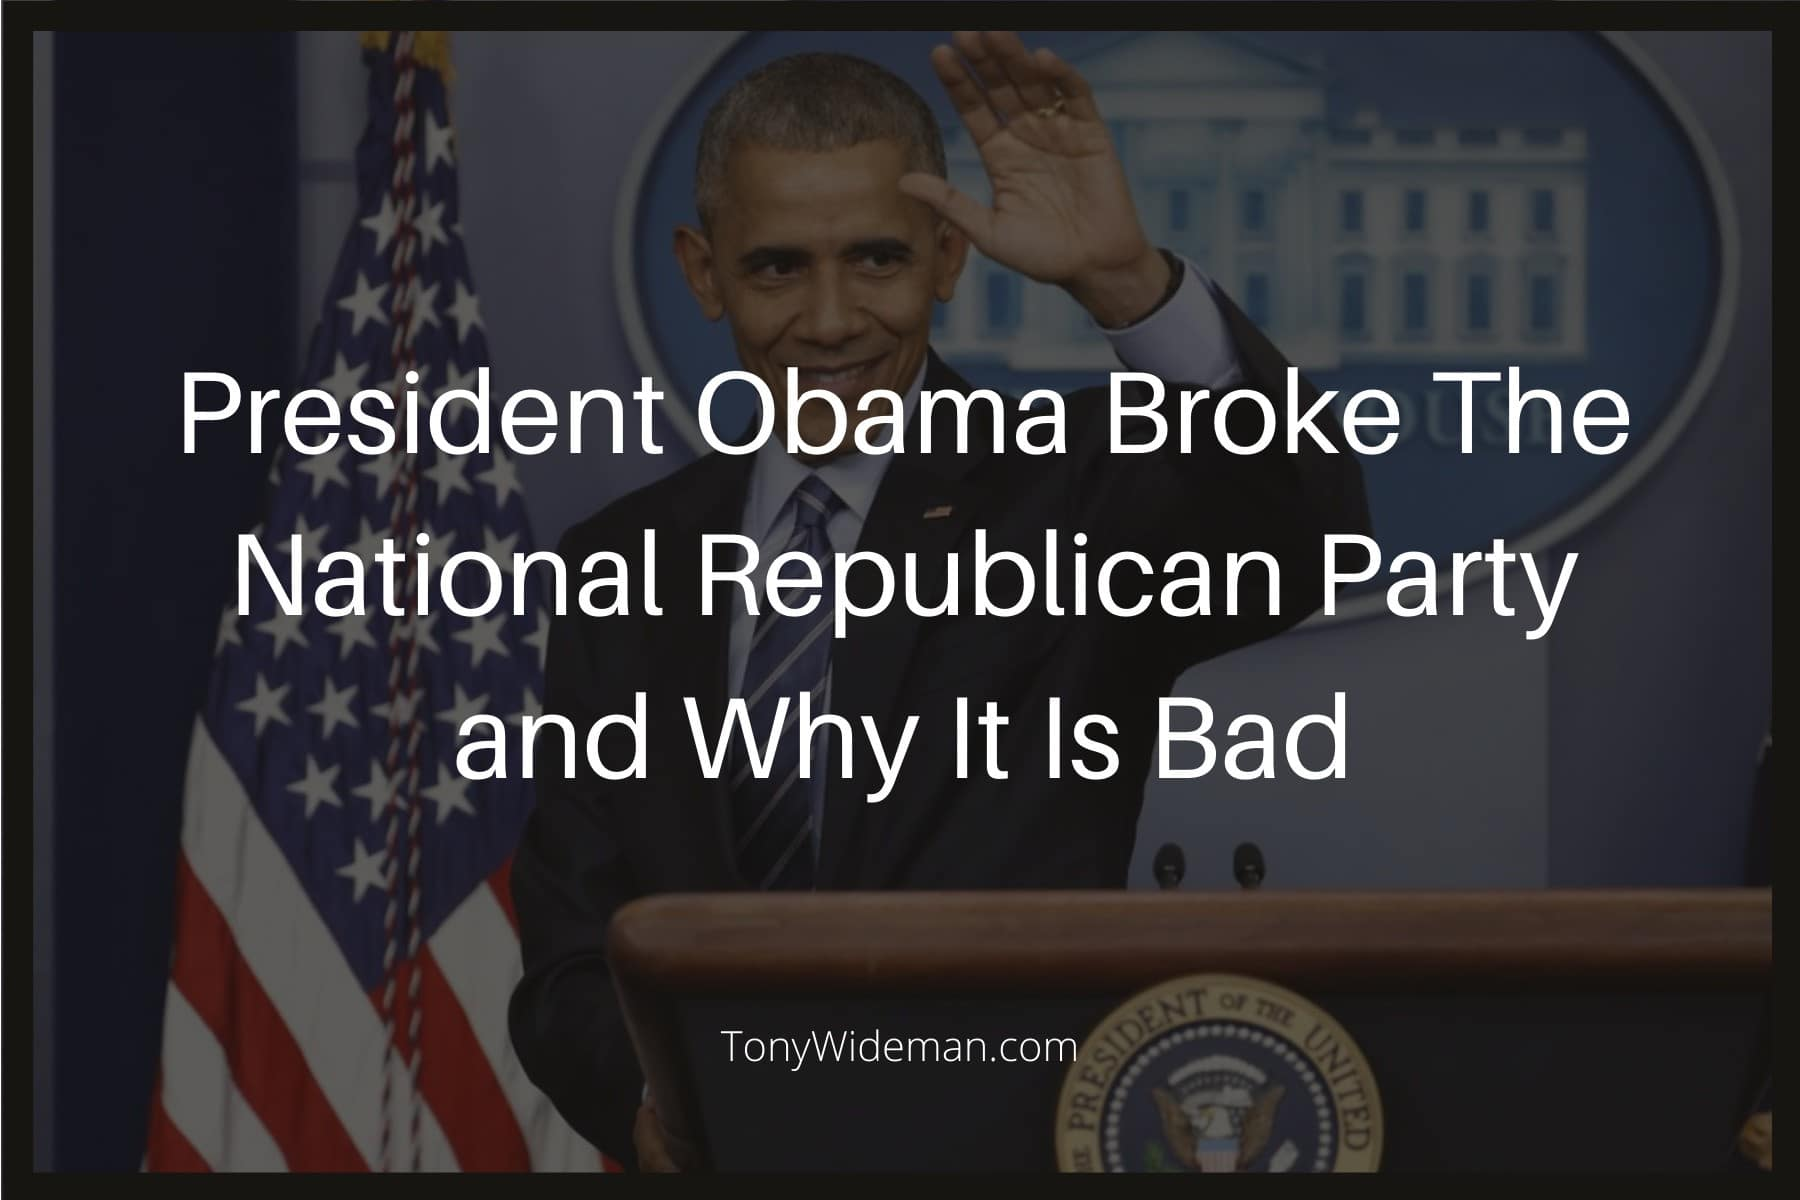 President Obama Broke The National Republican Party and Why It Is Bad